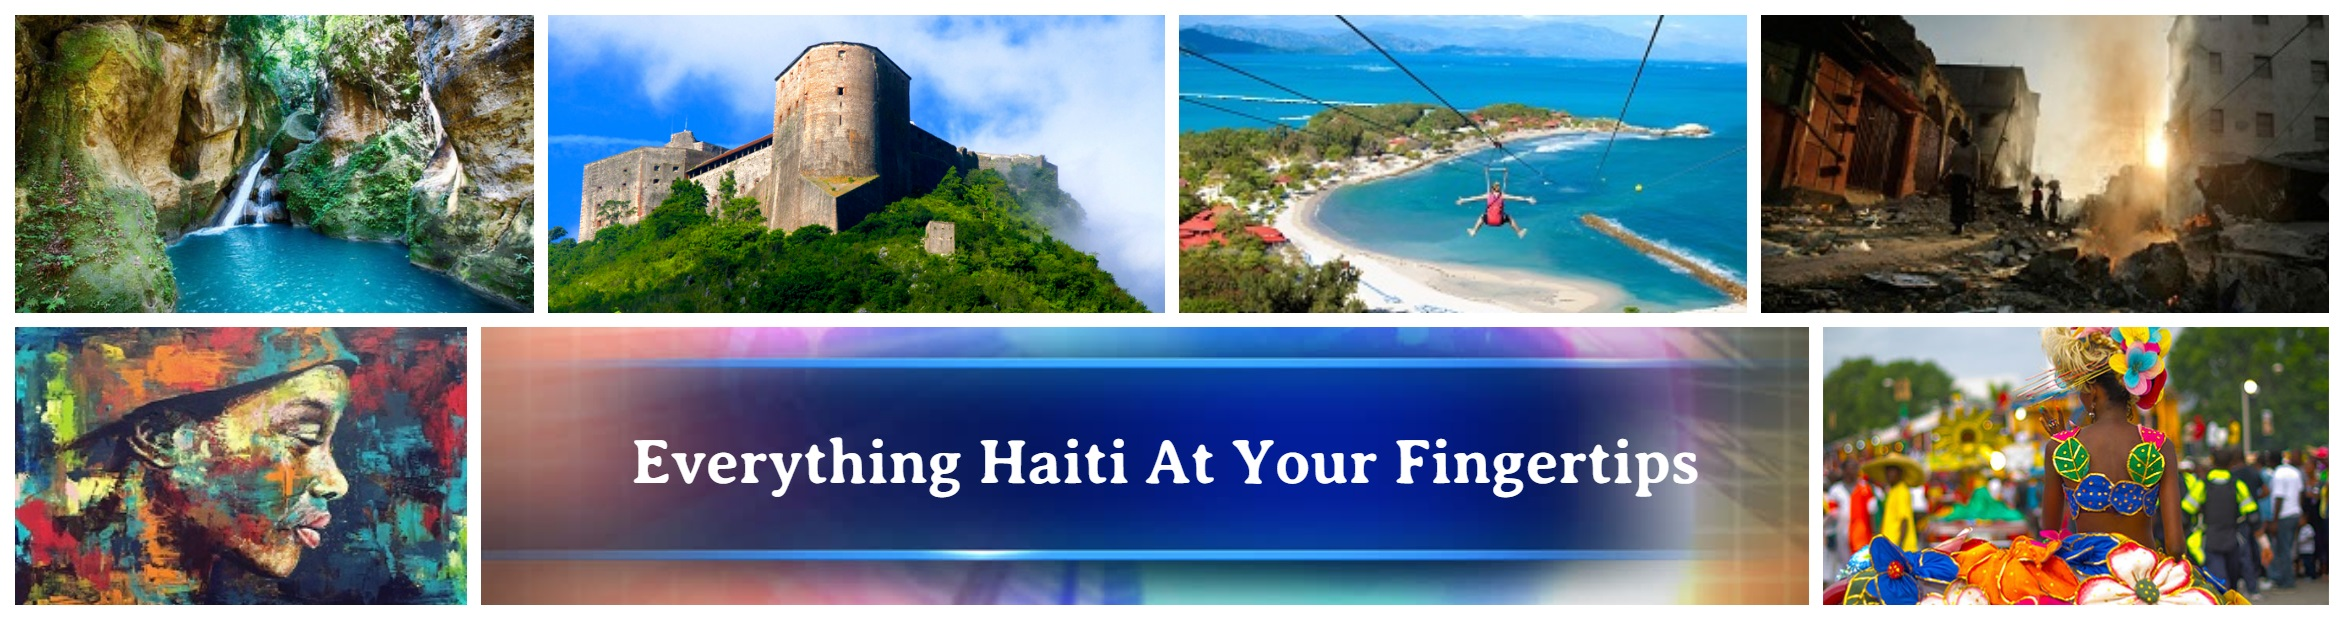 Haiti social network , website about everything Haitian